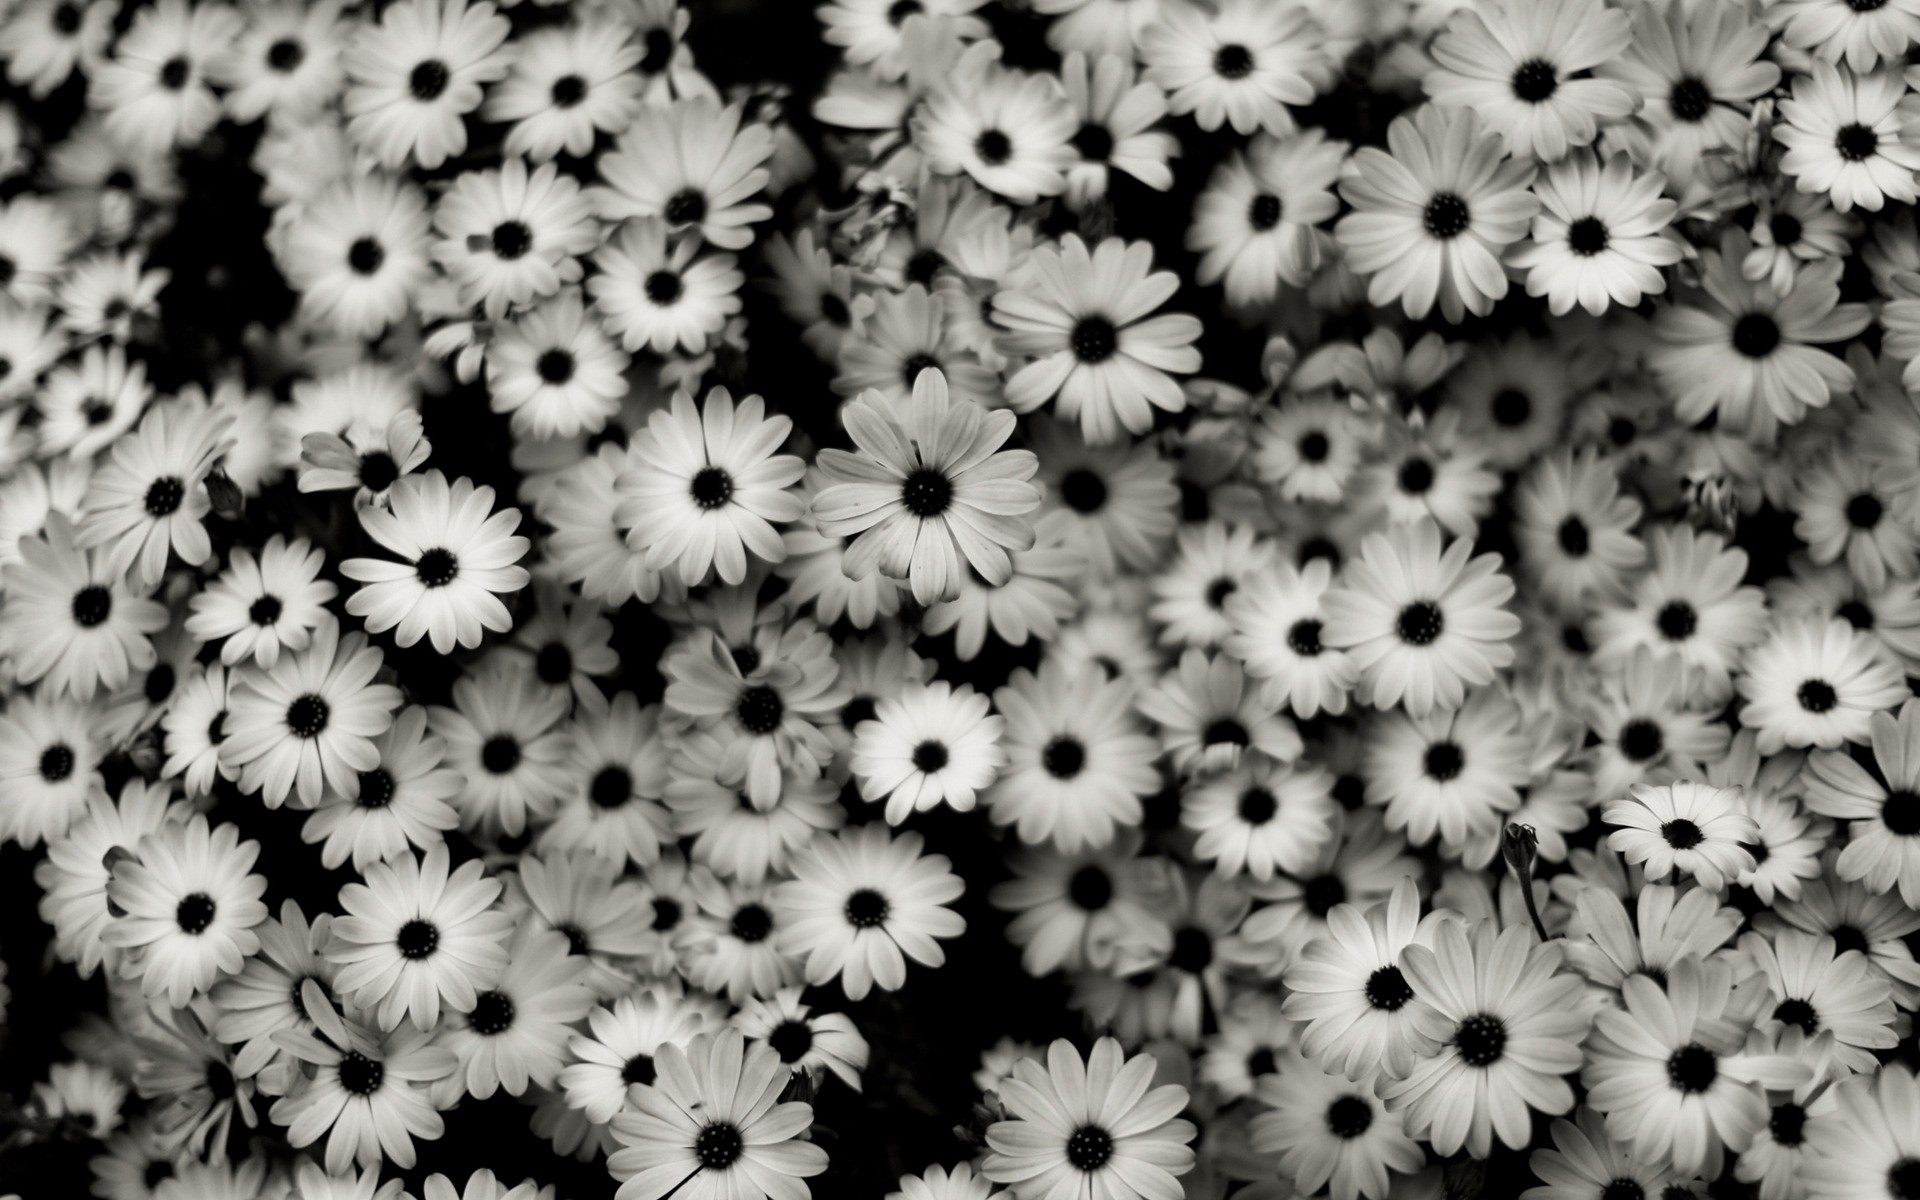 60 Tumblr Backgrounds Black And White Download Free Beautiful